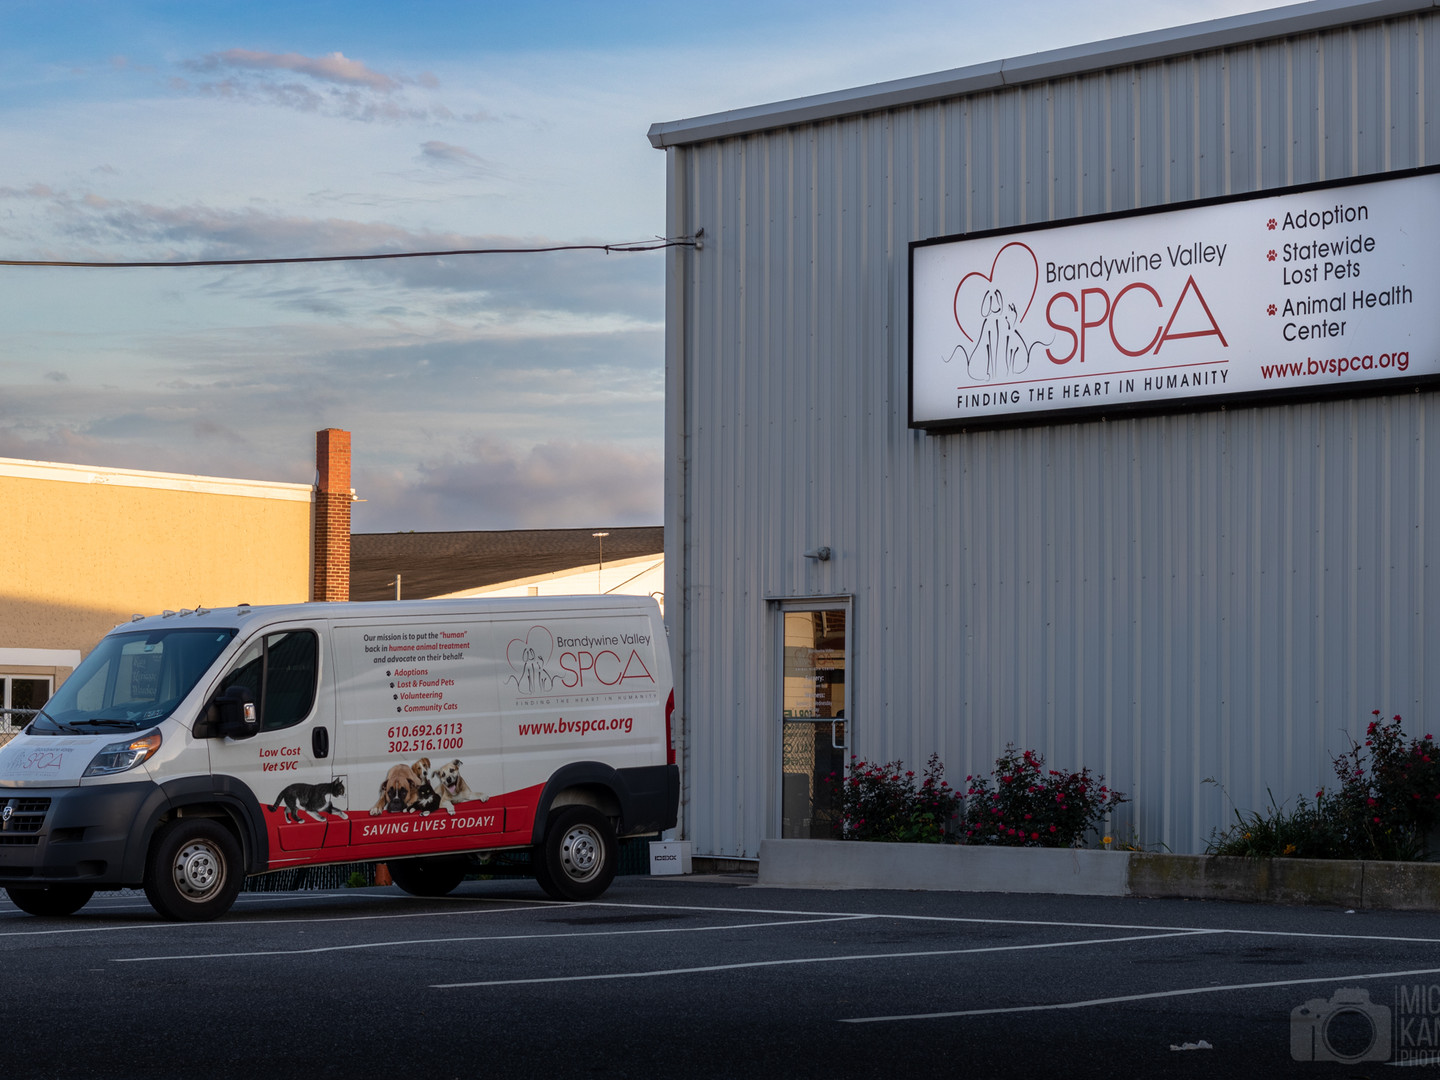 Truck Wrap and Illuminated Signage